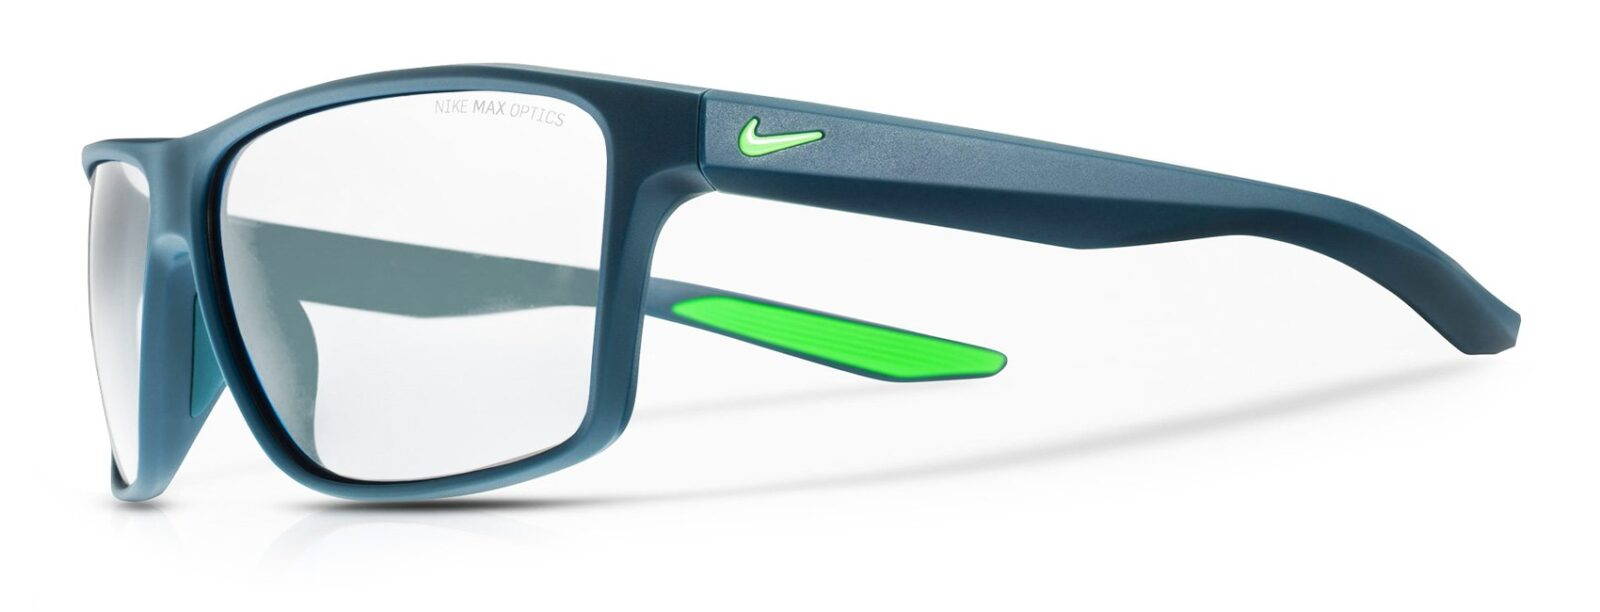 Radiation Glasses NIke Premier Matte Blue